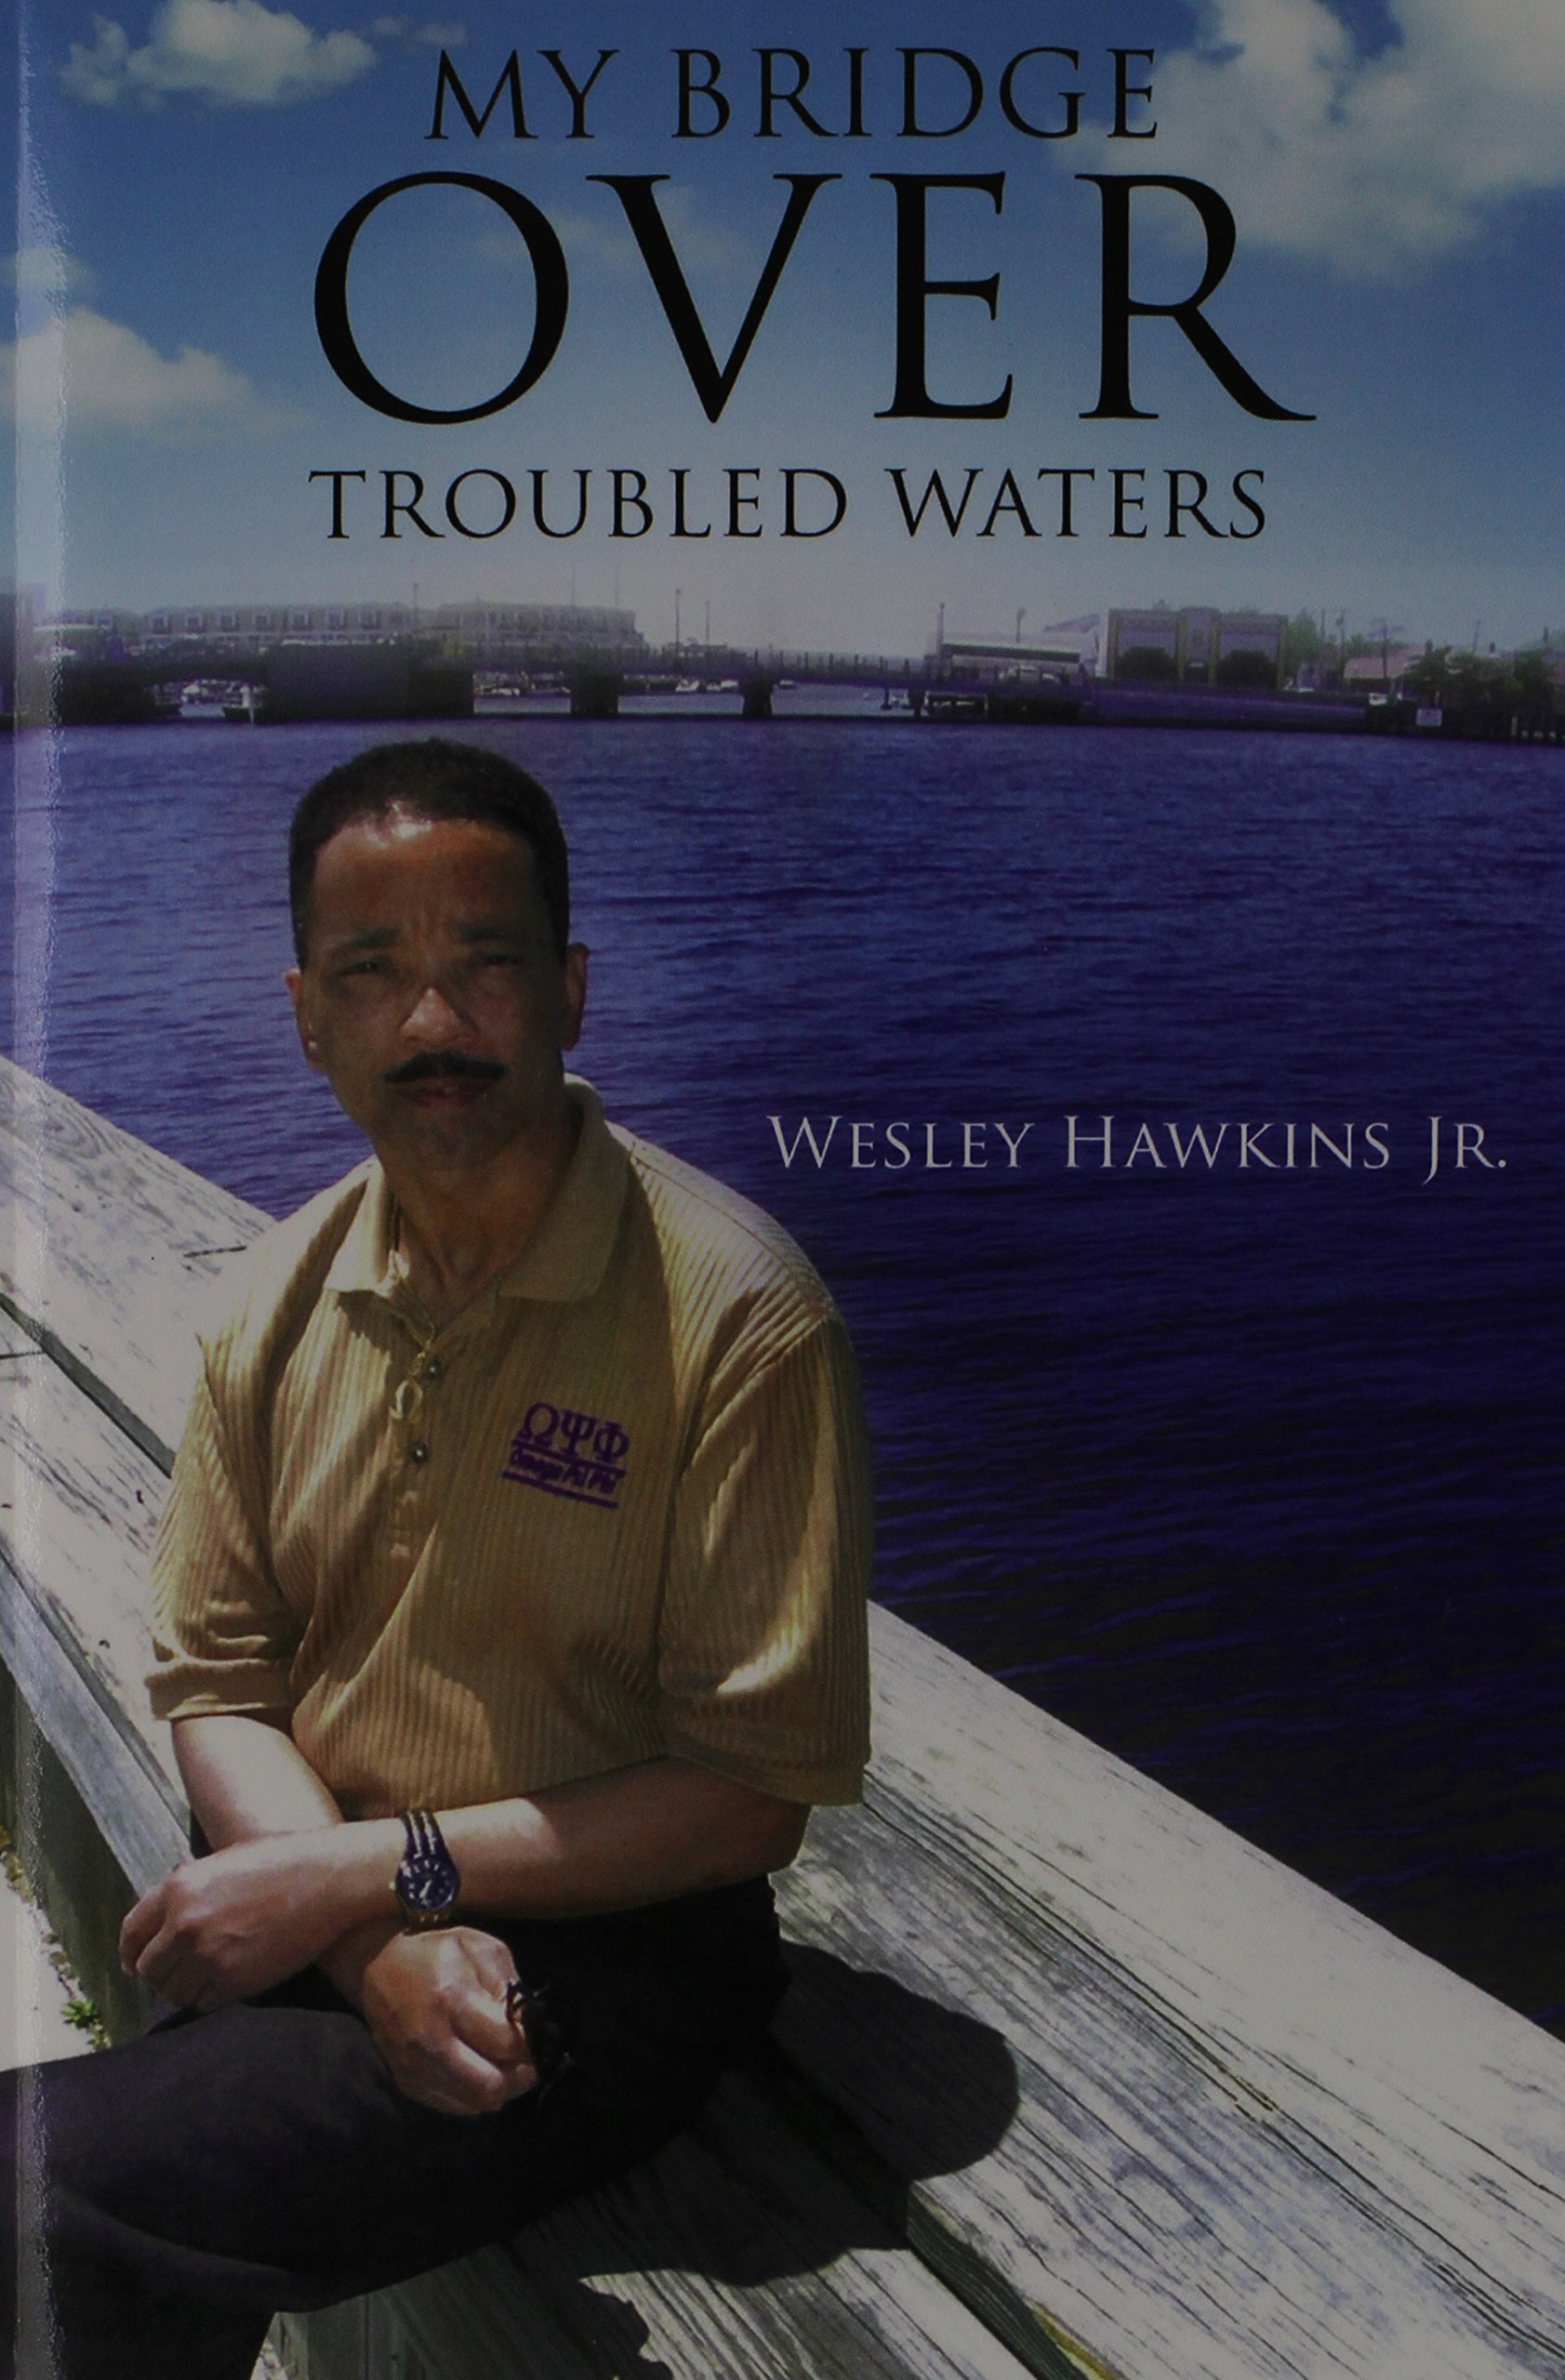 My Bridge Over Troubled Waters